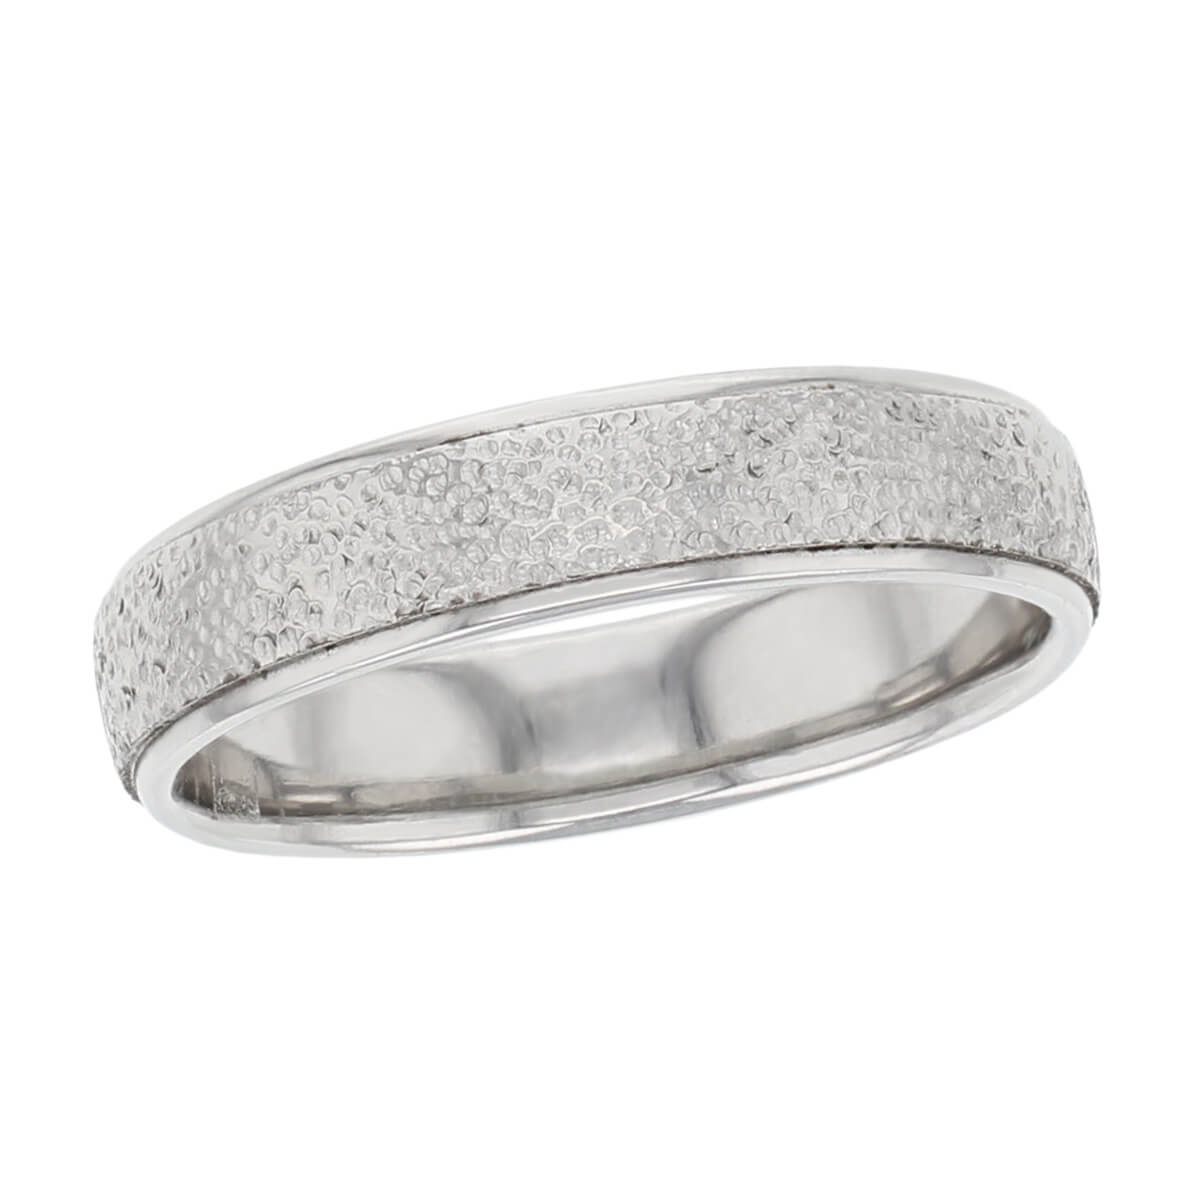 texture & polished wedding ring pattern, men's, gents, made by Faller